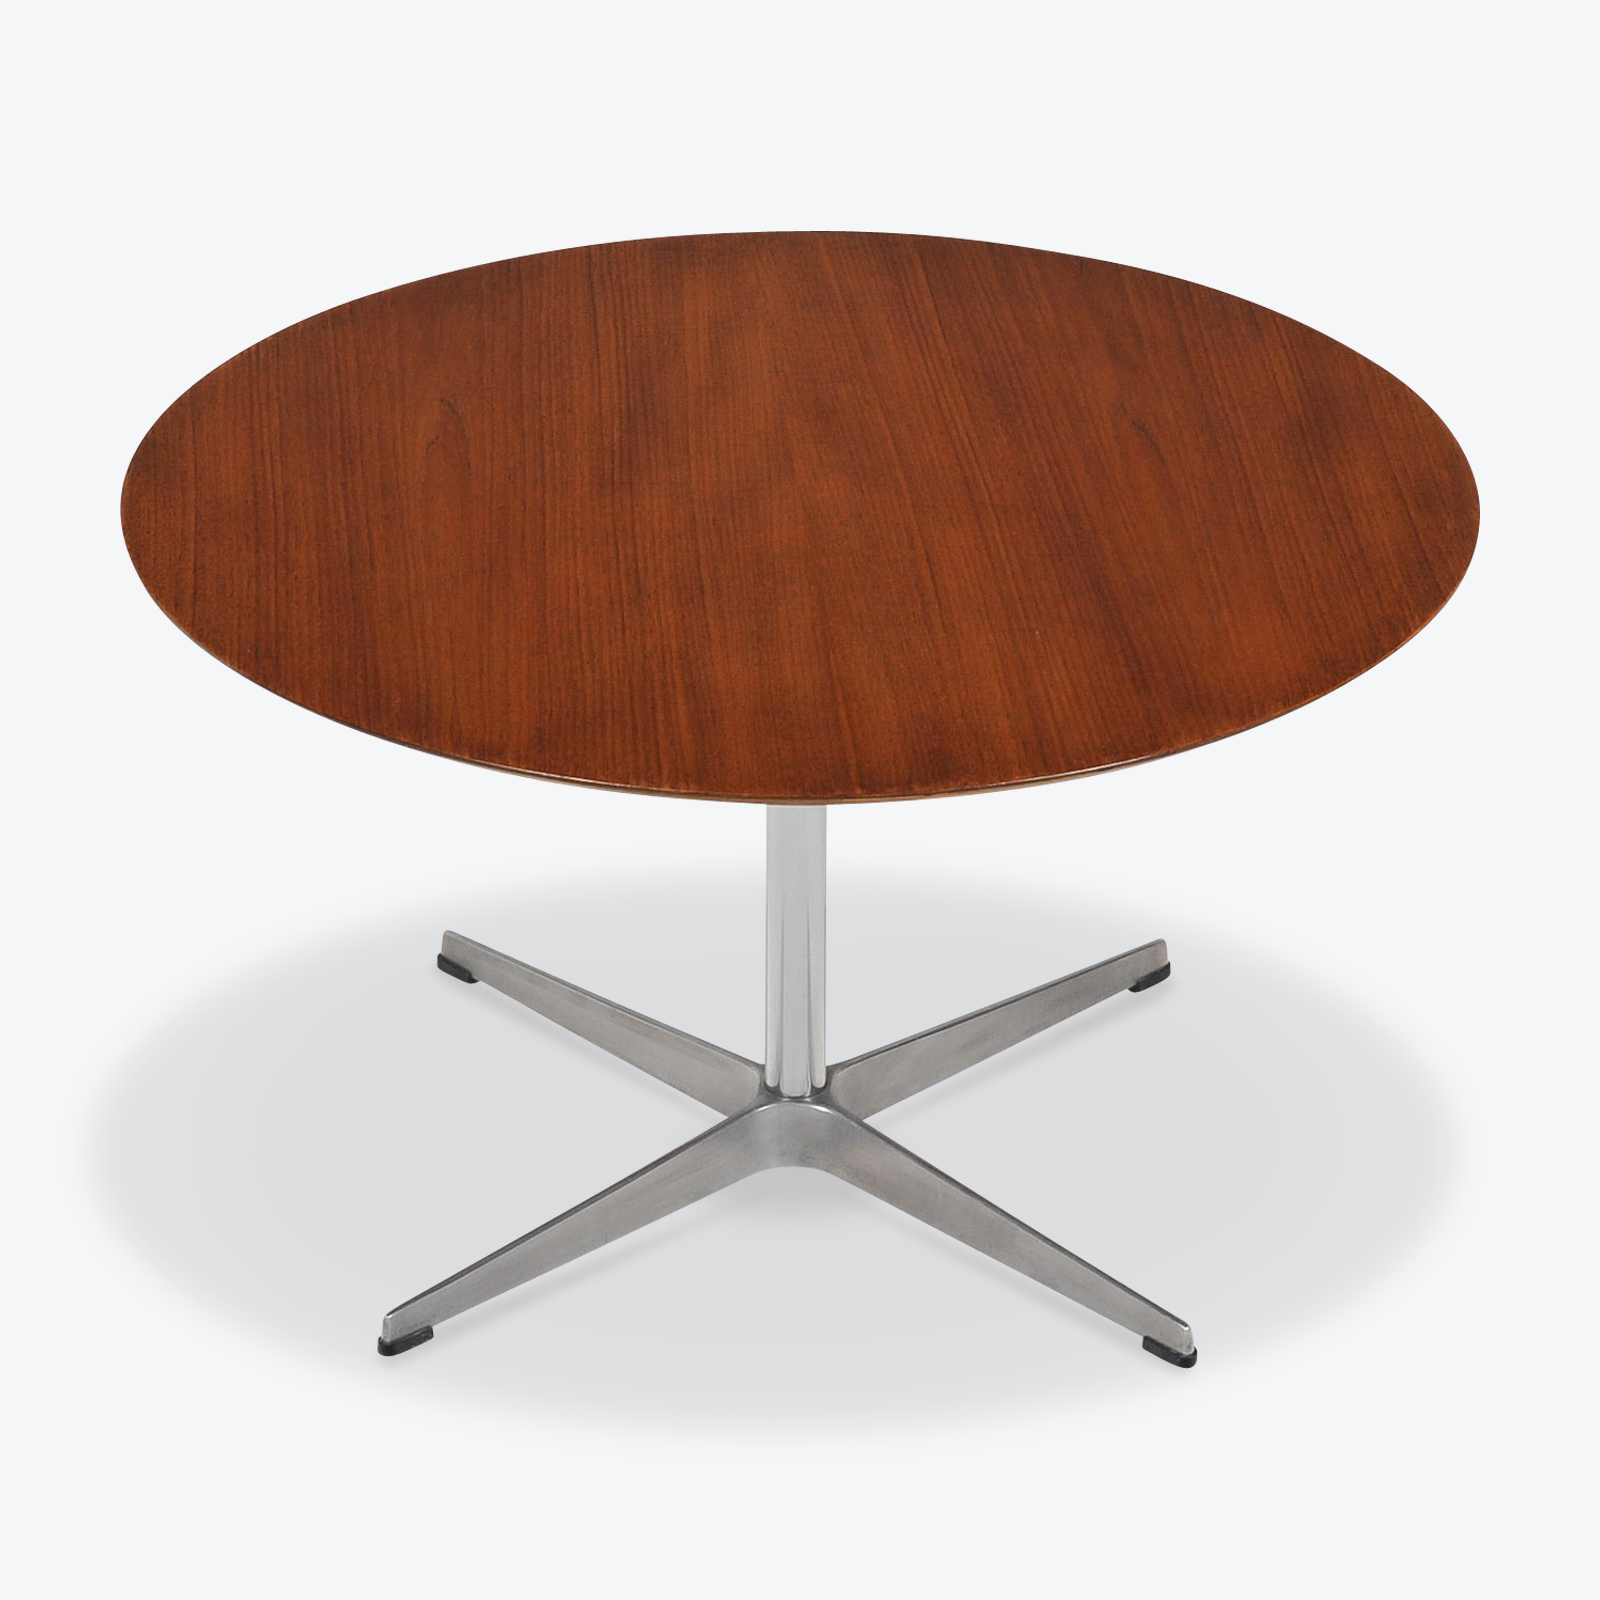 Arne Jacobsen Round Coffee Table In Teak By Arne Jacobsen With Steel Base 1960s Denmark